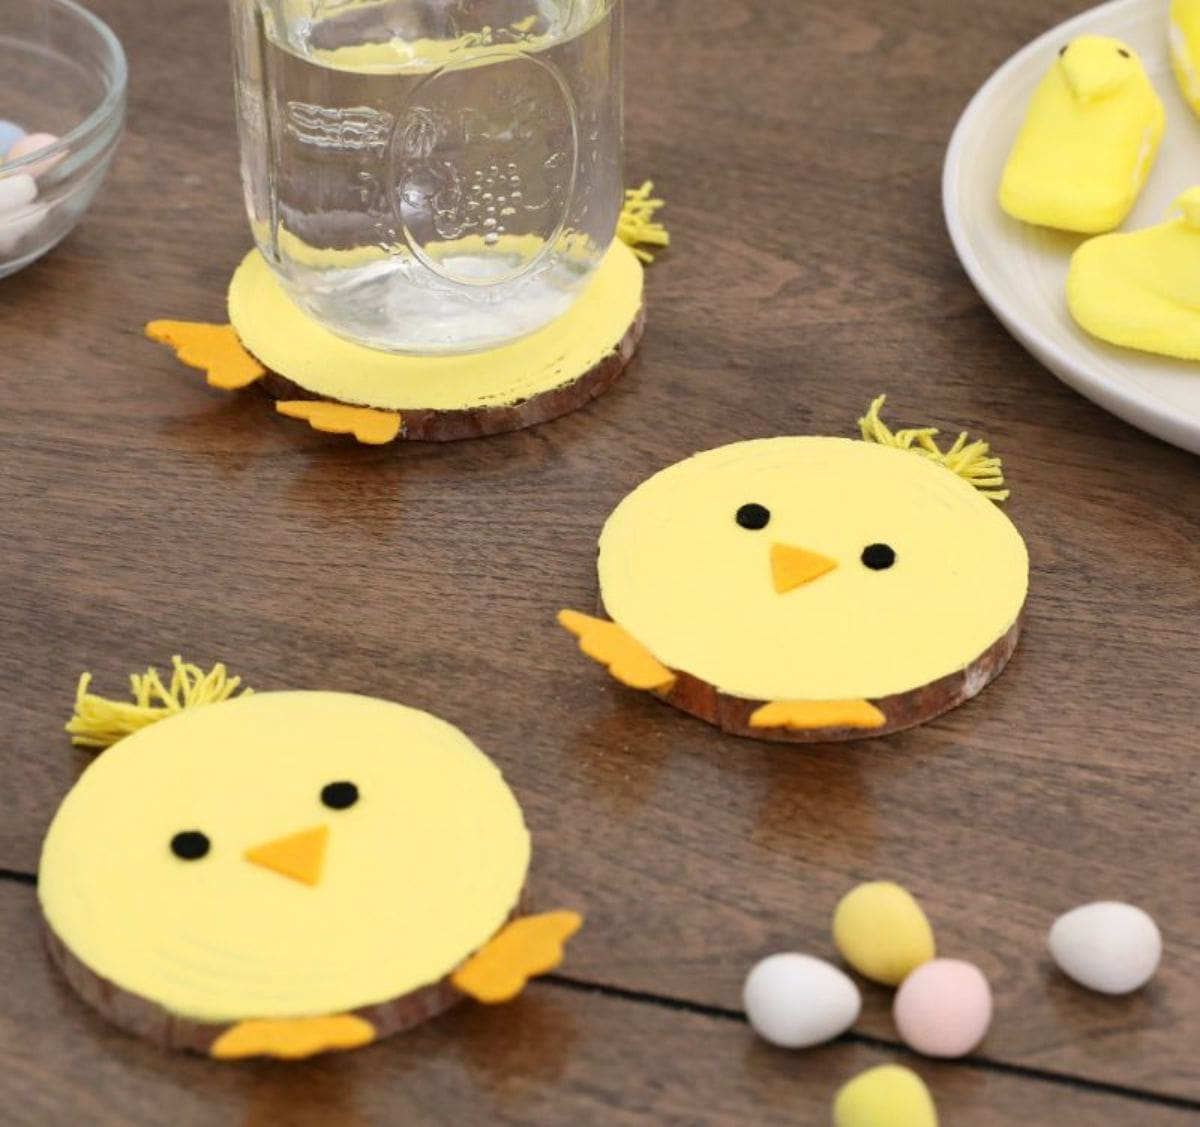 on a wooden table, 3 wooden coasters have been painted to look like yellow chicks. One of them has a mason jar sitting on it